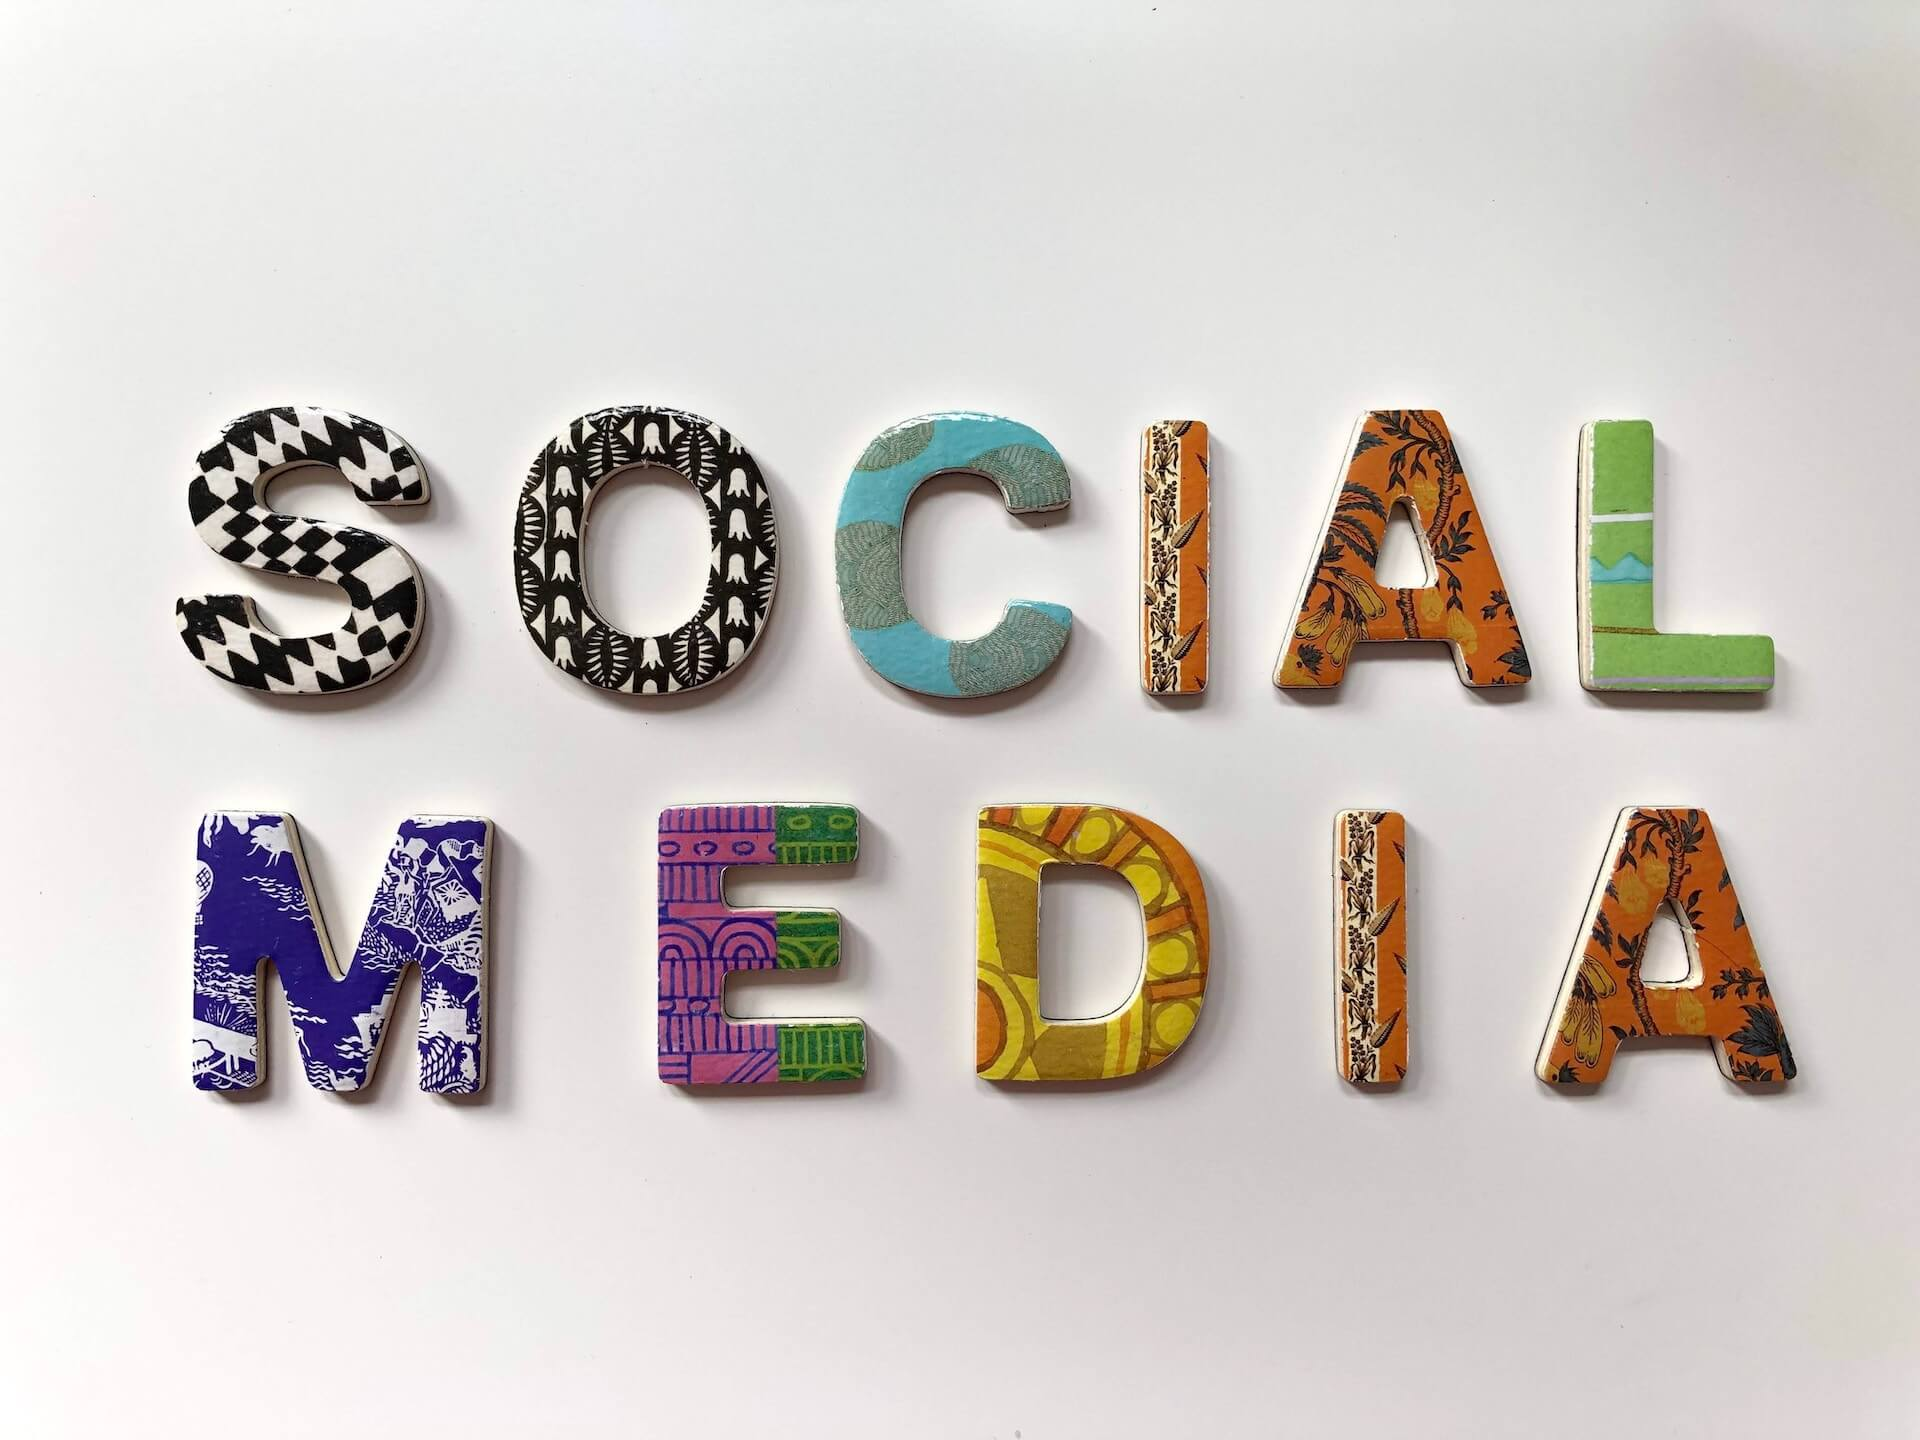 5 Social Media Trends That Impacts Digital Advertising